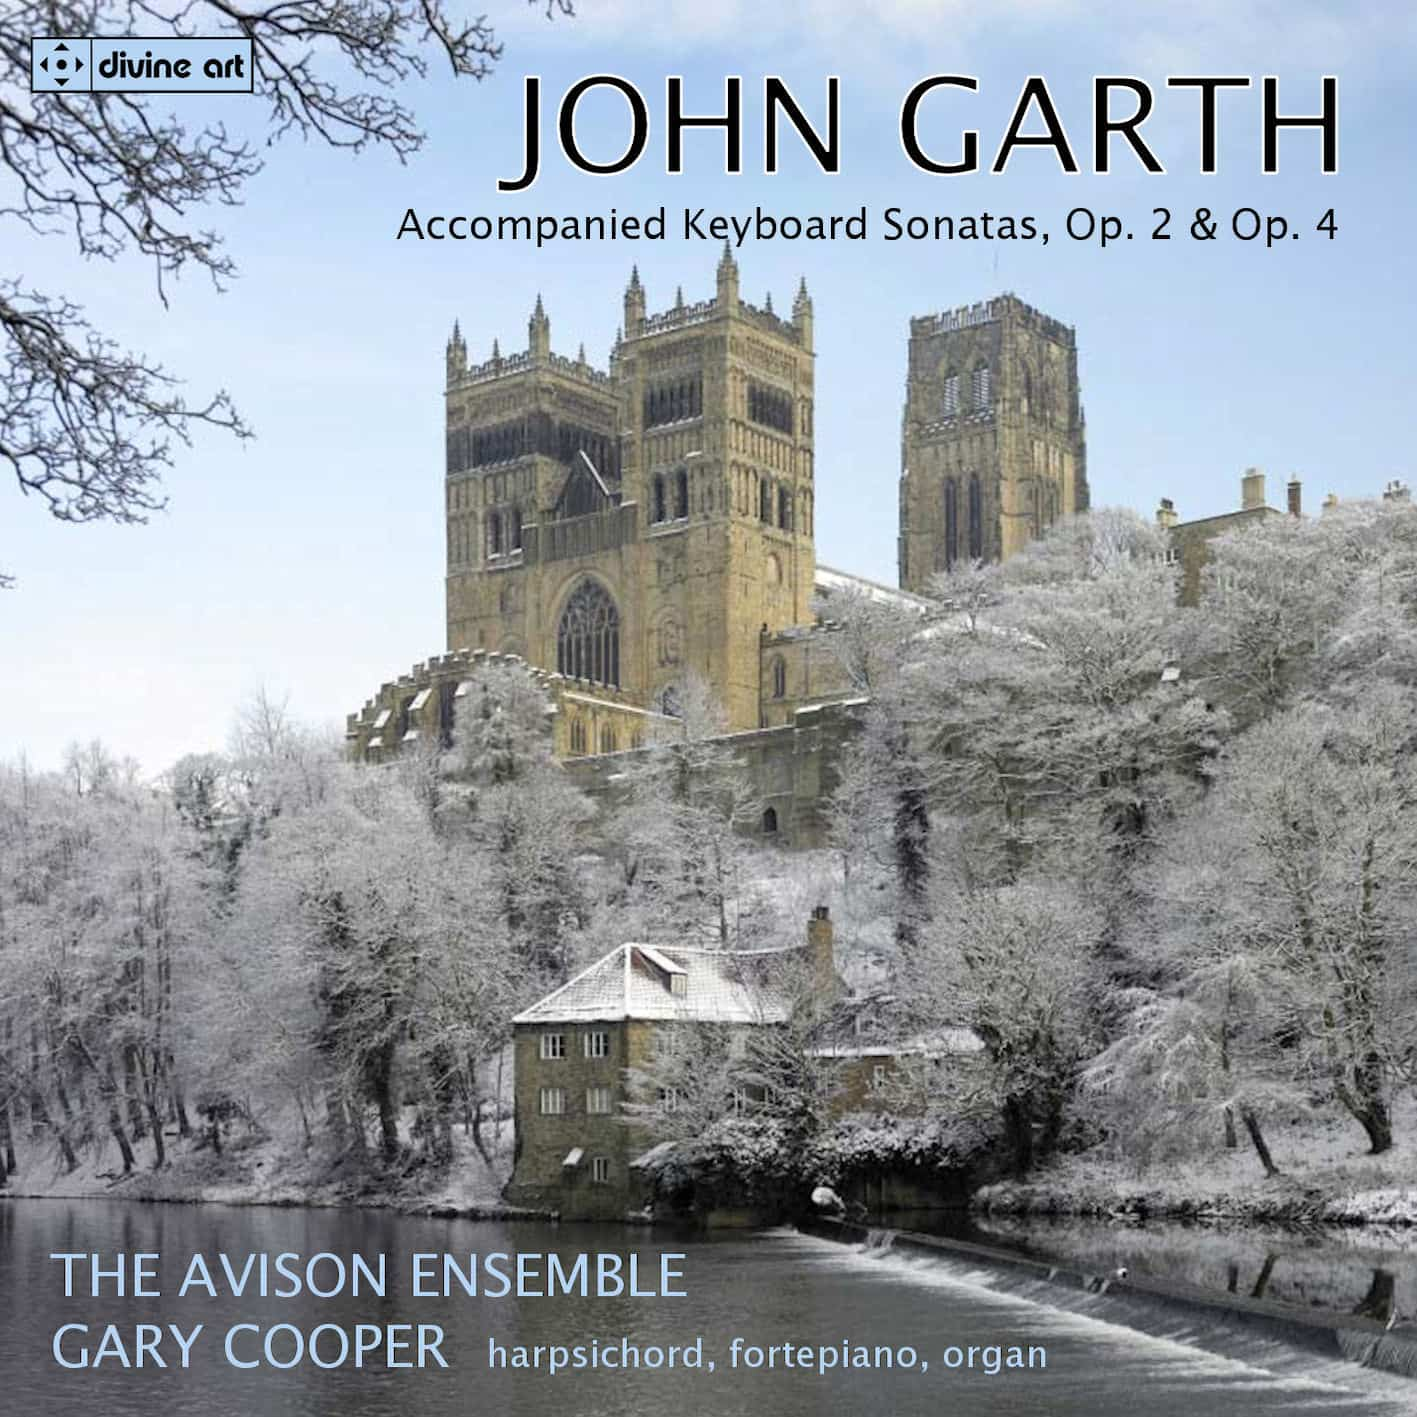 John Garth - Accompanied Keyboard Sonatas,Op. 2 & Op. 4